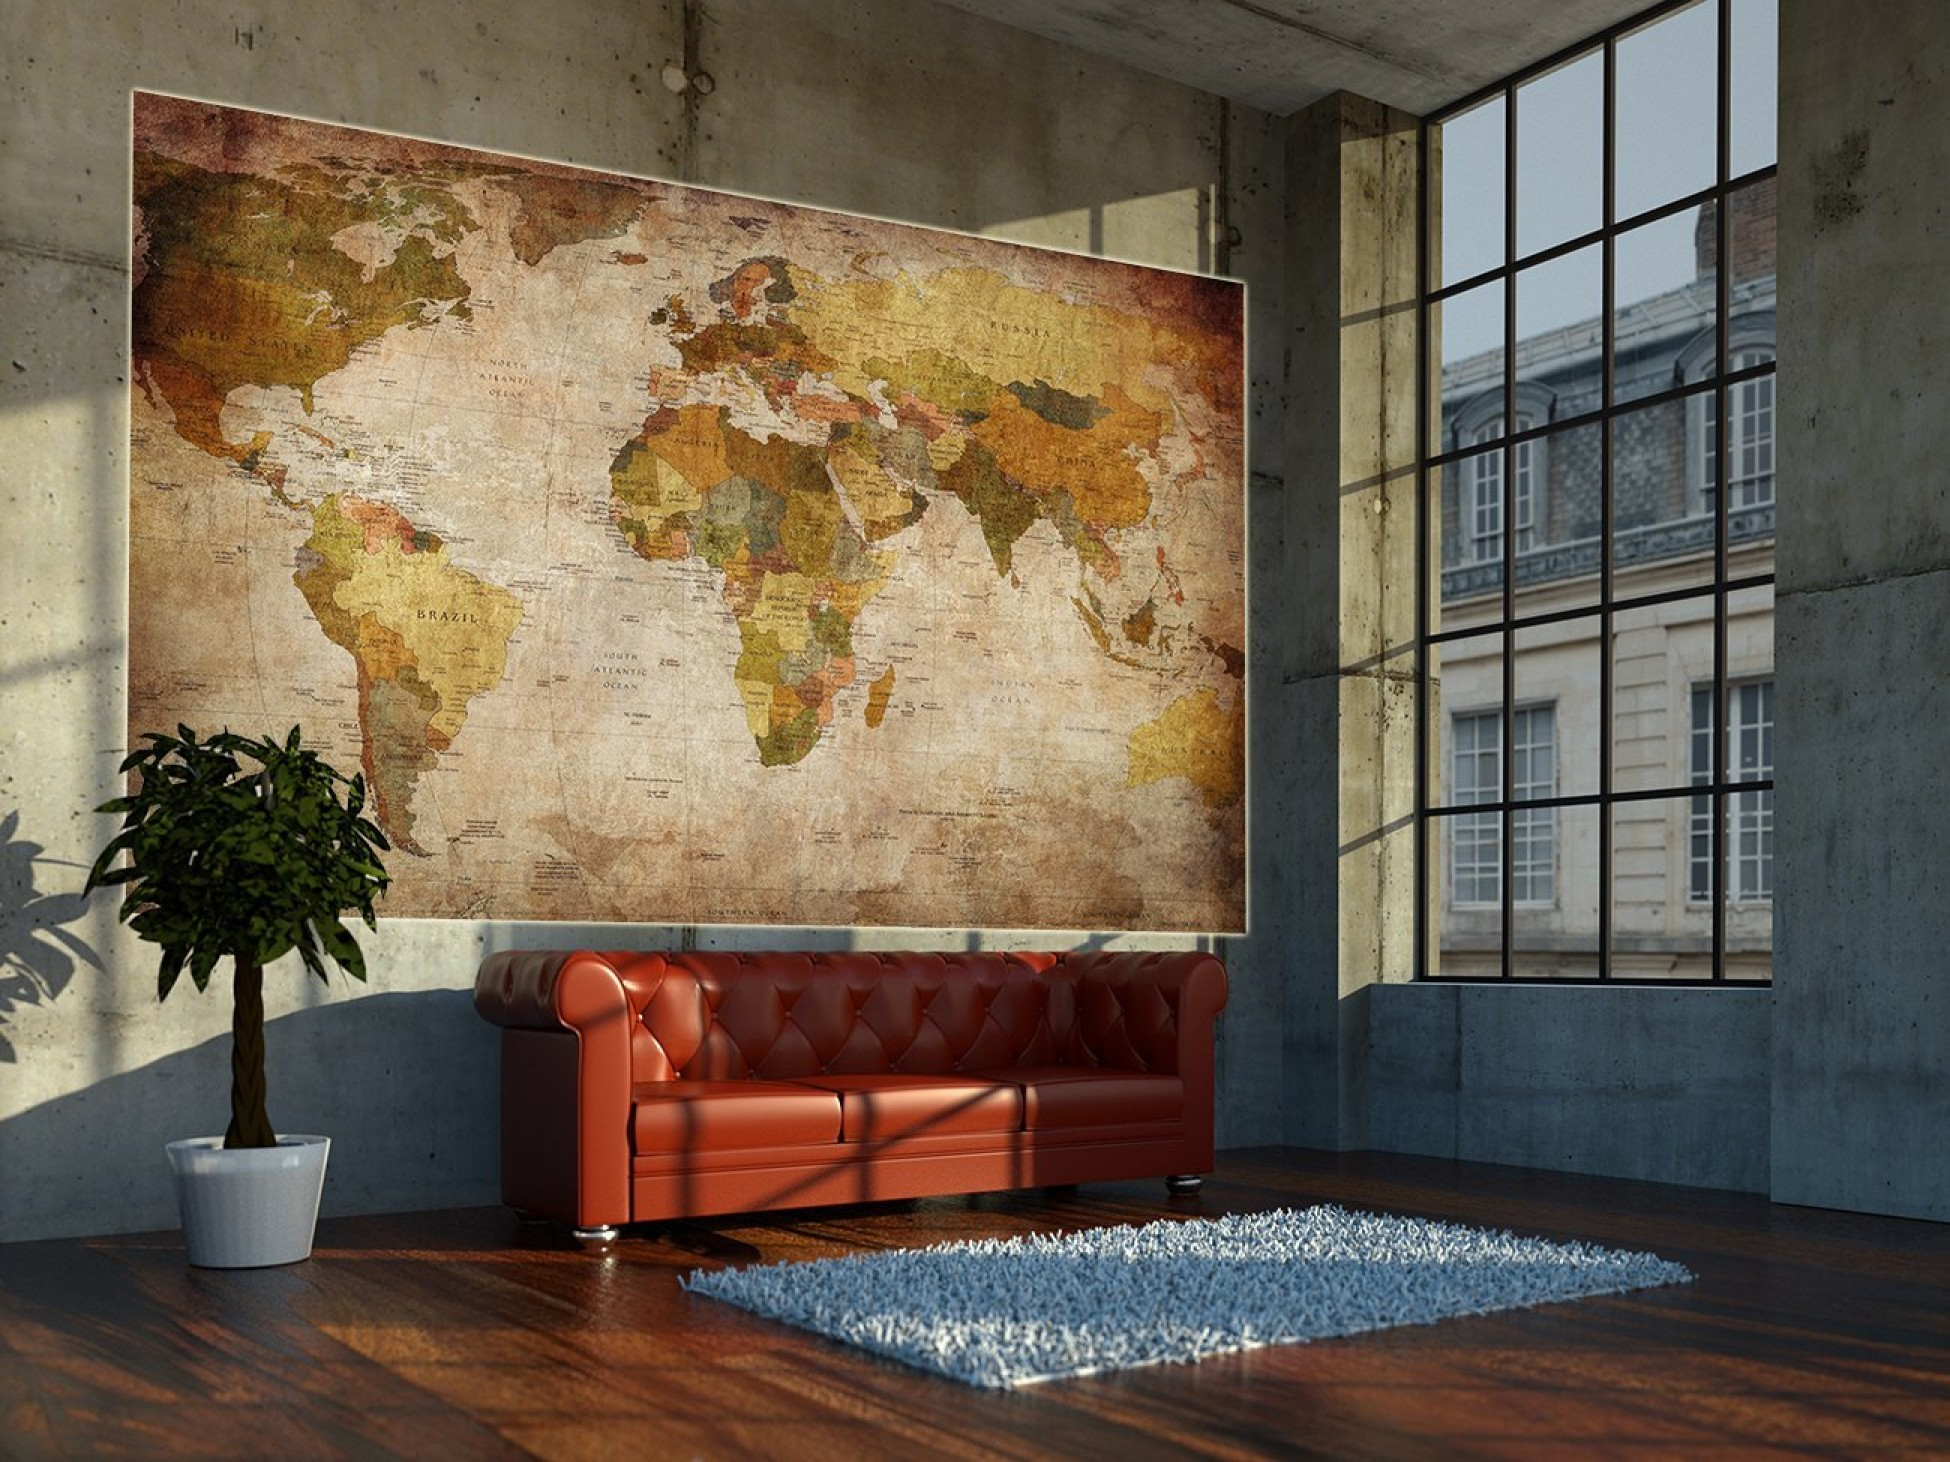 World map photo wallpaper mural vintage retro motif xxl for Antique mural wallpaper